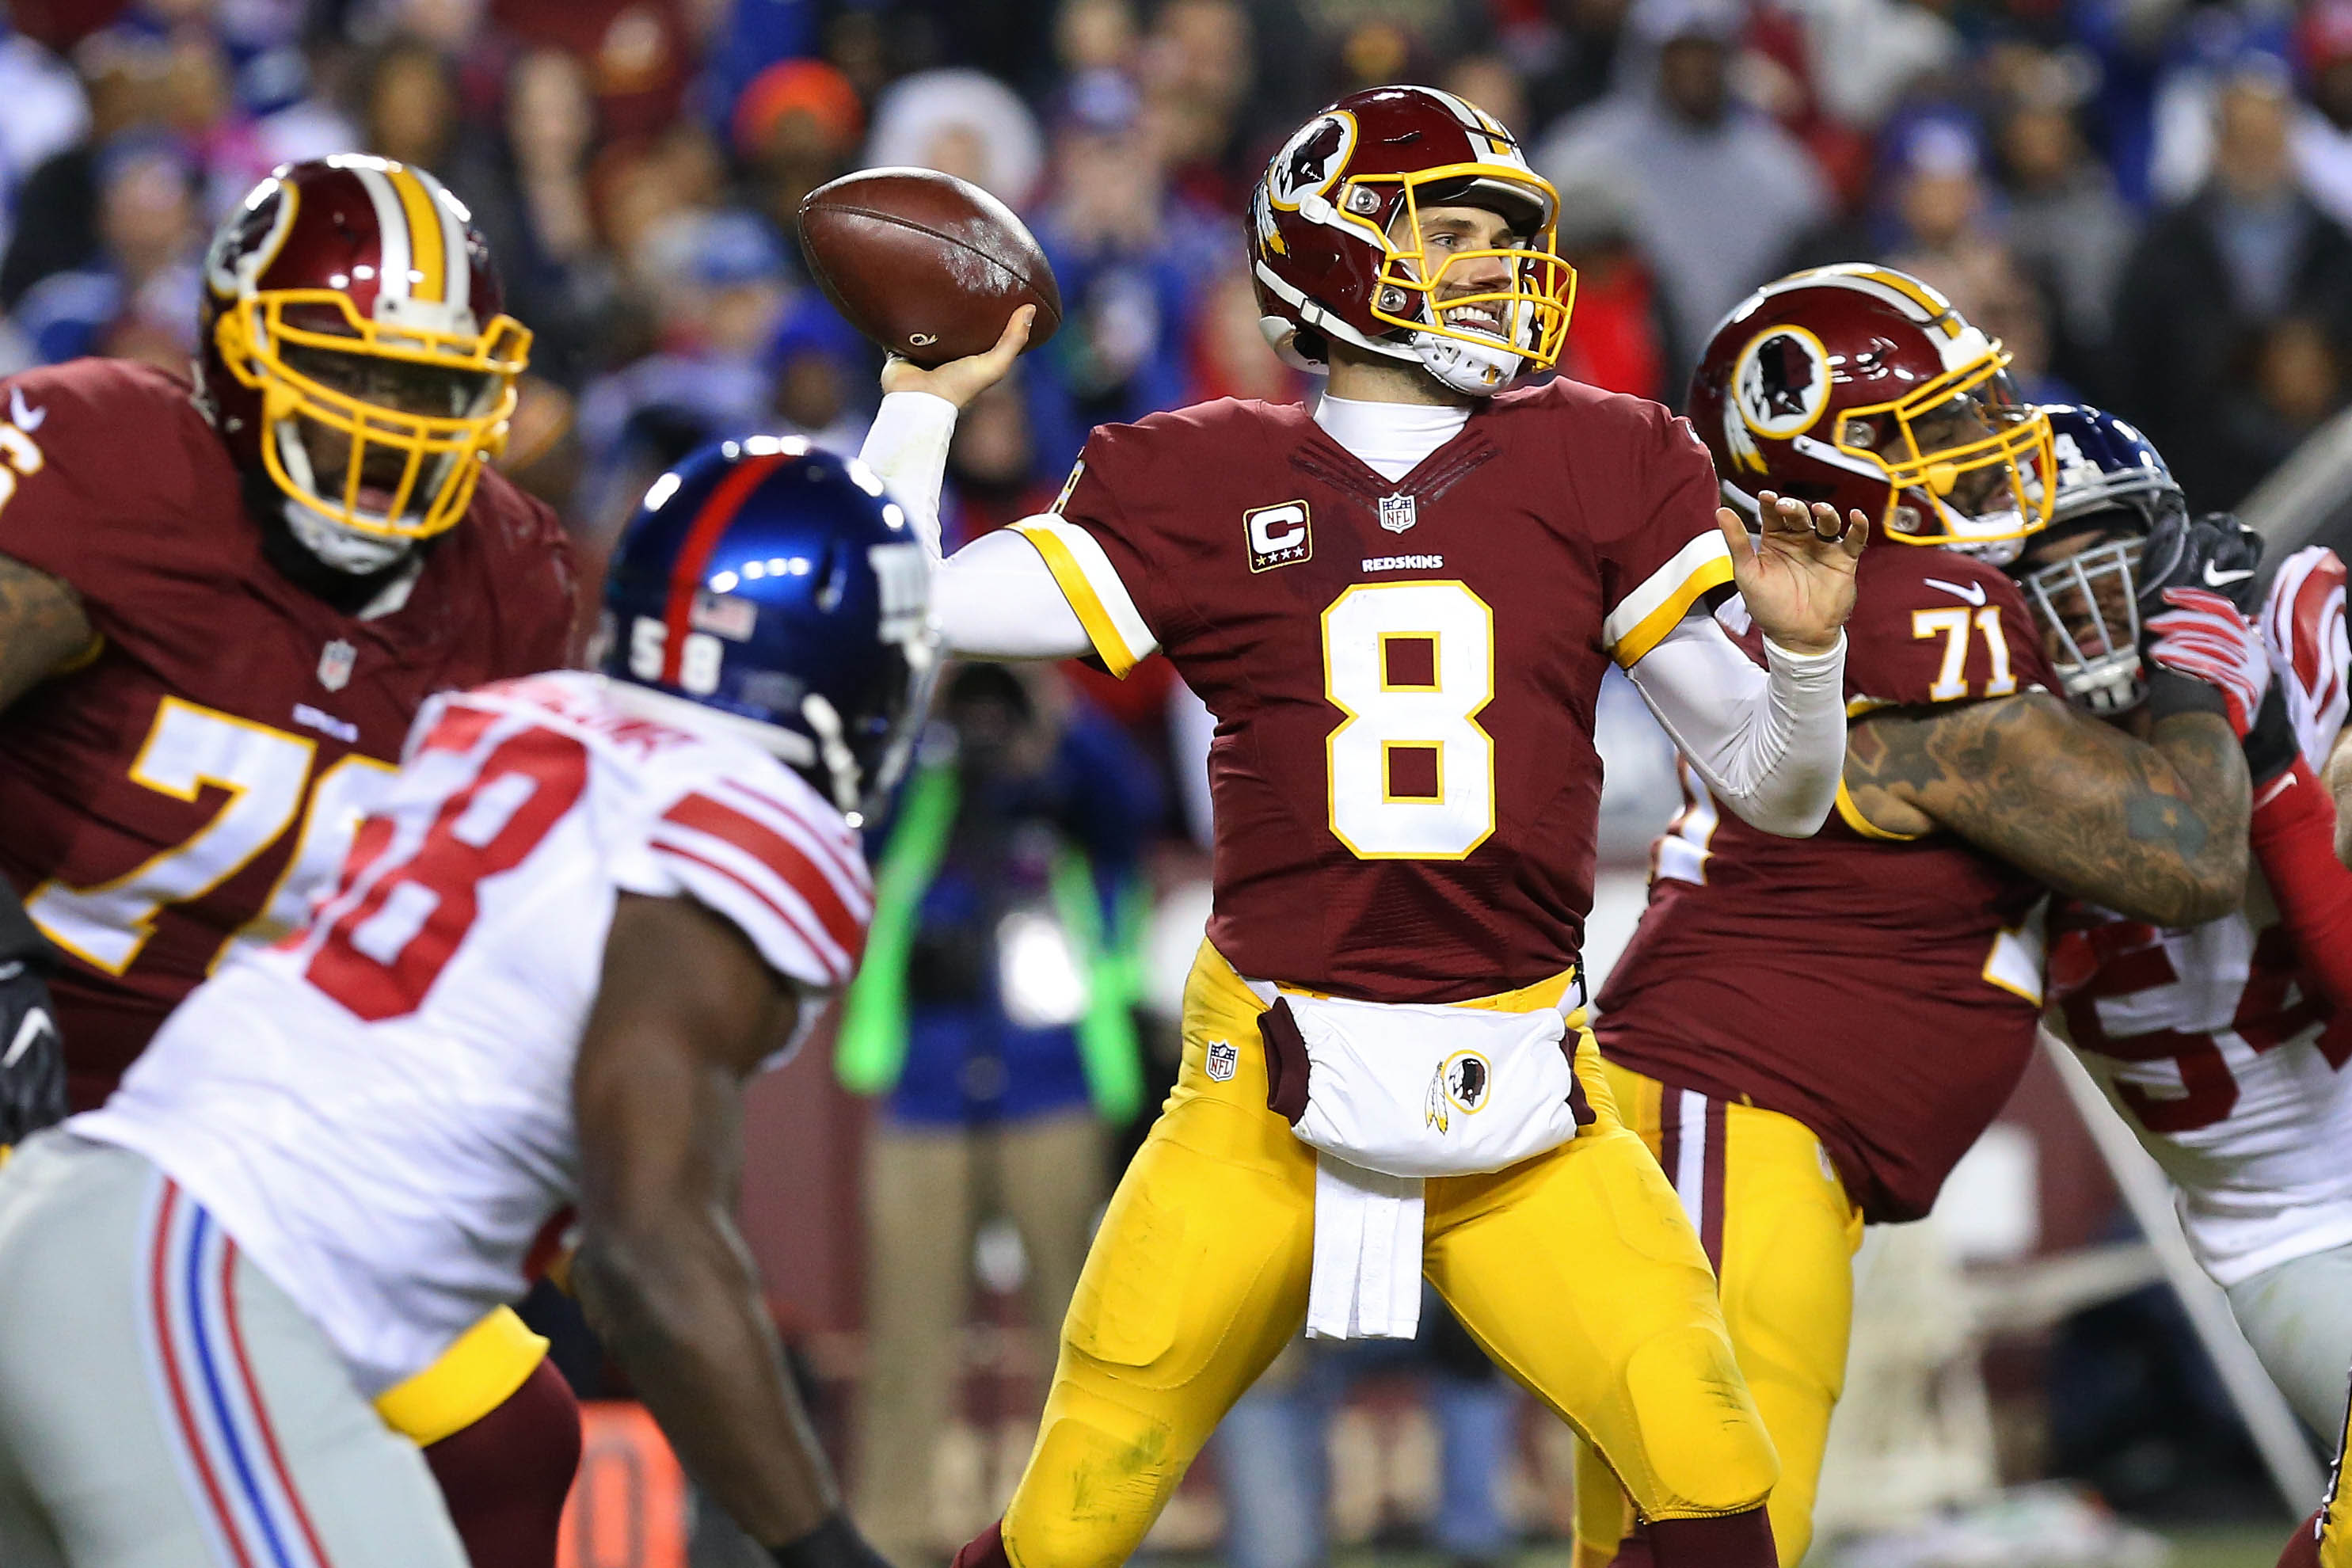 Jan 1, 2017; Landover, MD, USA; Washington Redskins quarterback Kirk Cousins (8) throws the ball as New York Giants defensive end Owa Odighizuwa (58) chases in the third quarter at FedEx Field. The Giants won 19-10. Mandatory Credit: Geoff Burke-USA TODAY Sports